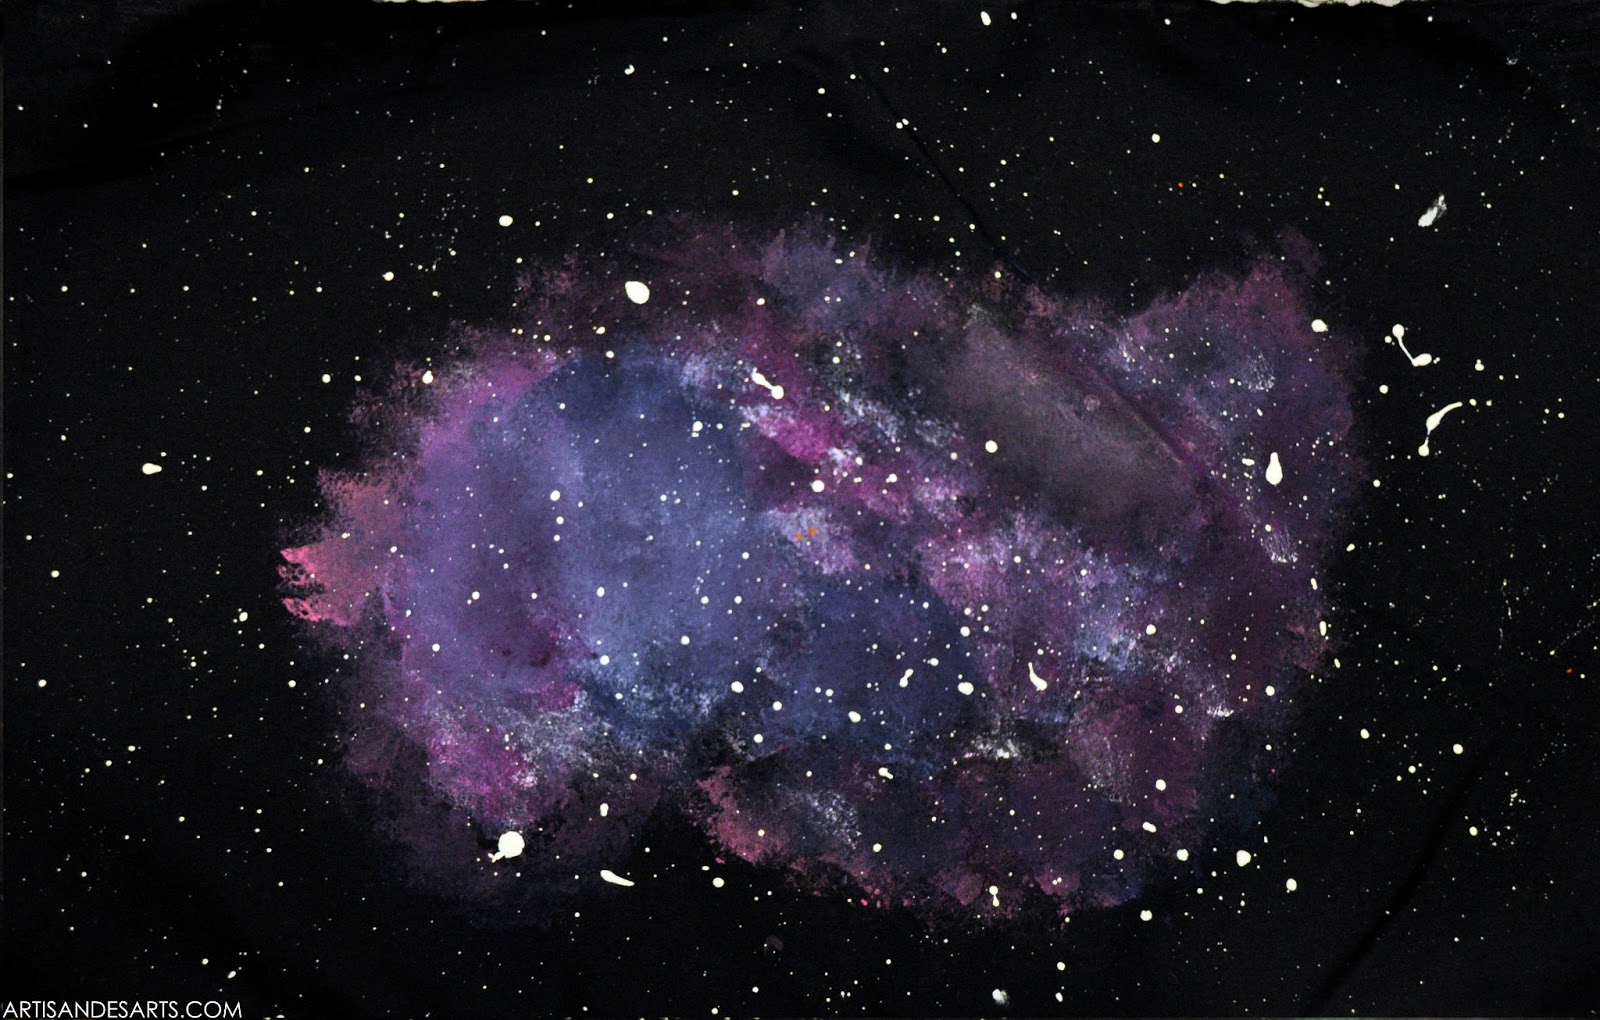 Purple Orange Space Galaxy Painting - Pics about space